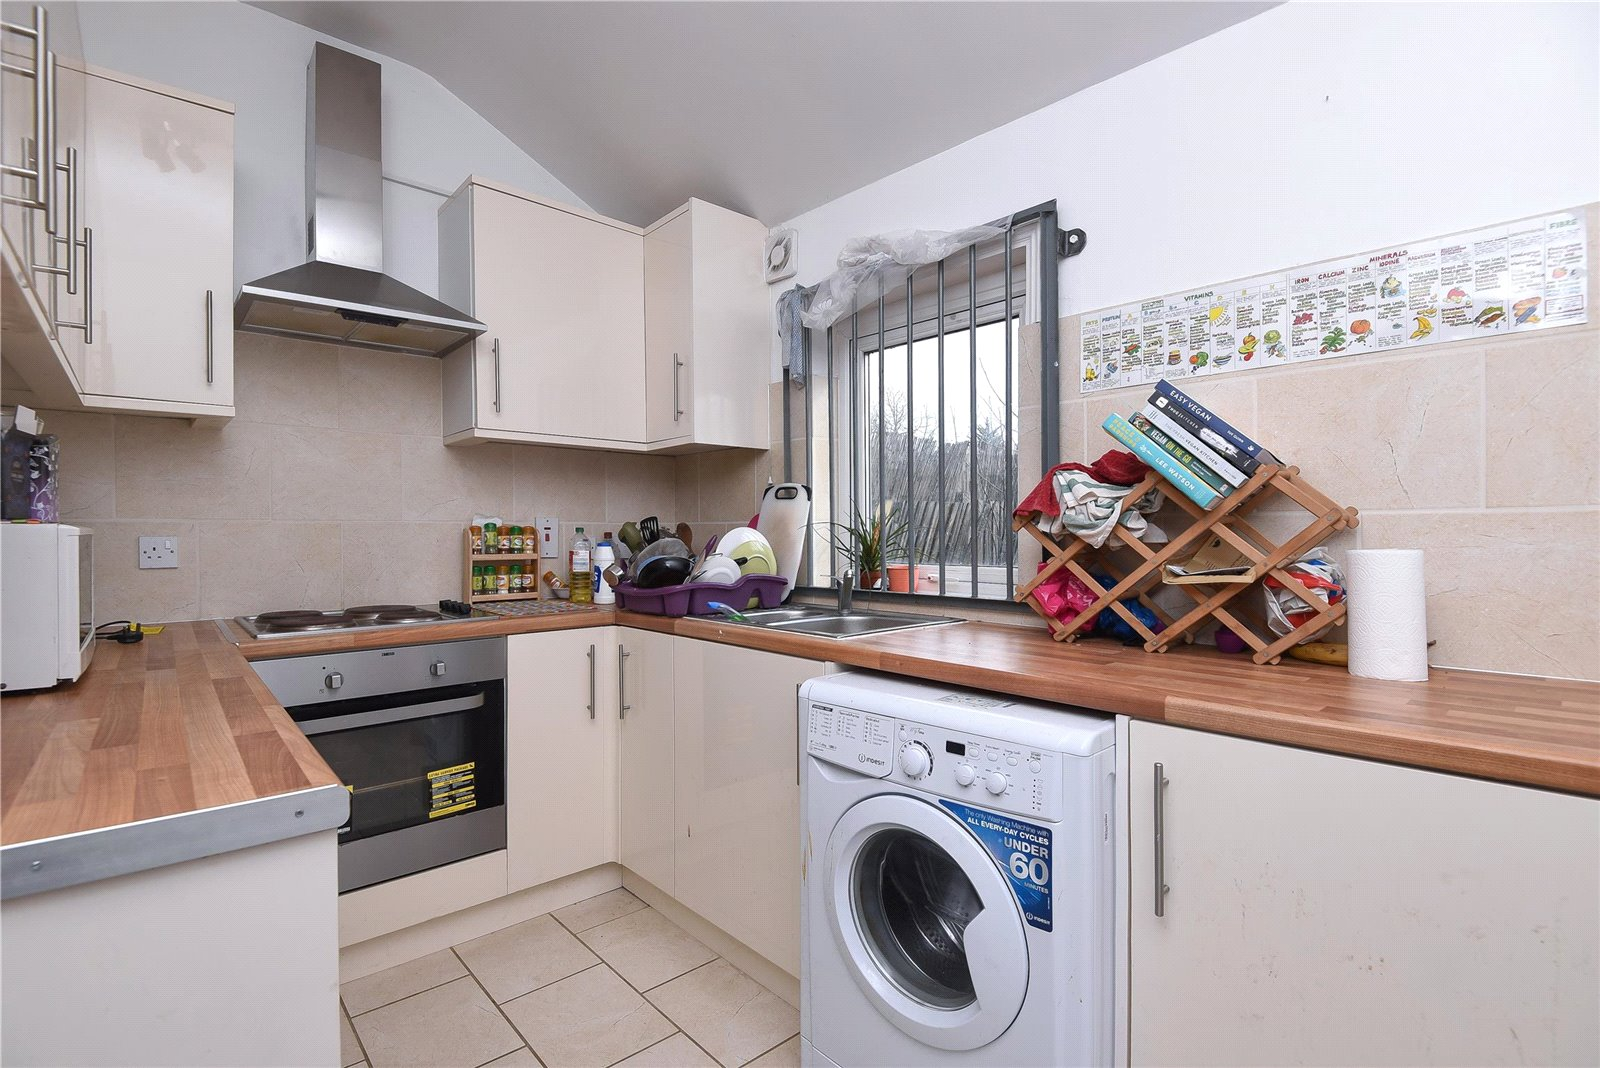 5 bed house for sale in Streatham  - Property Image 3